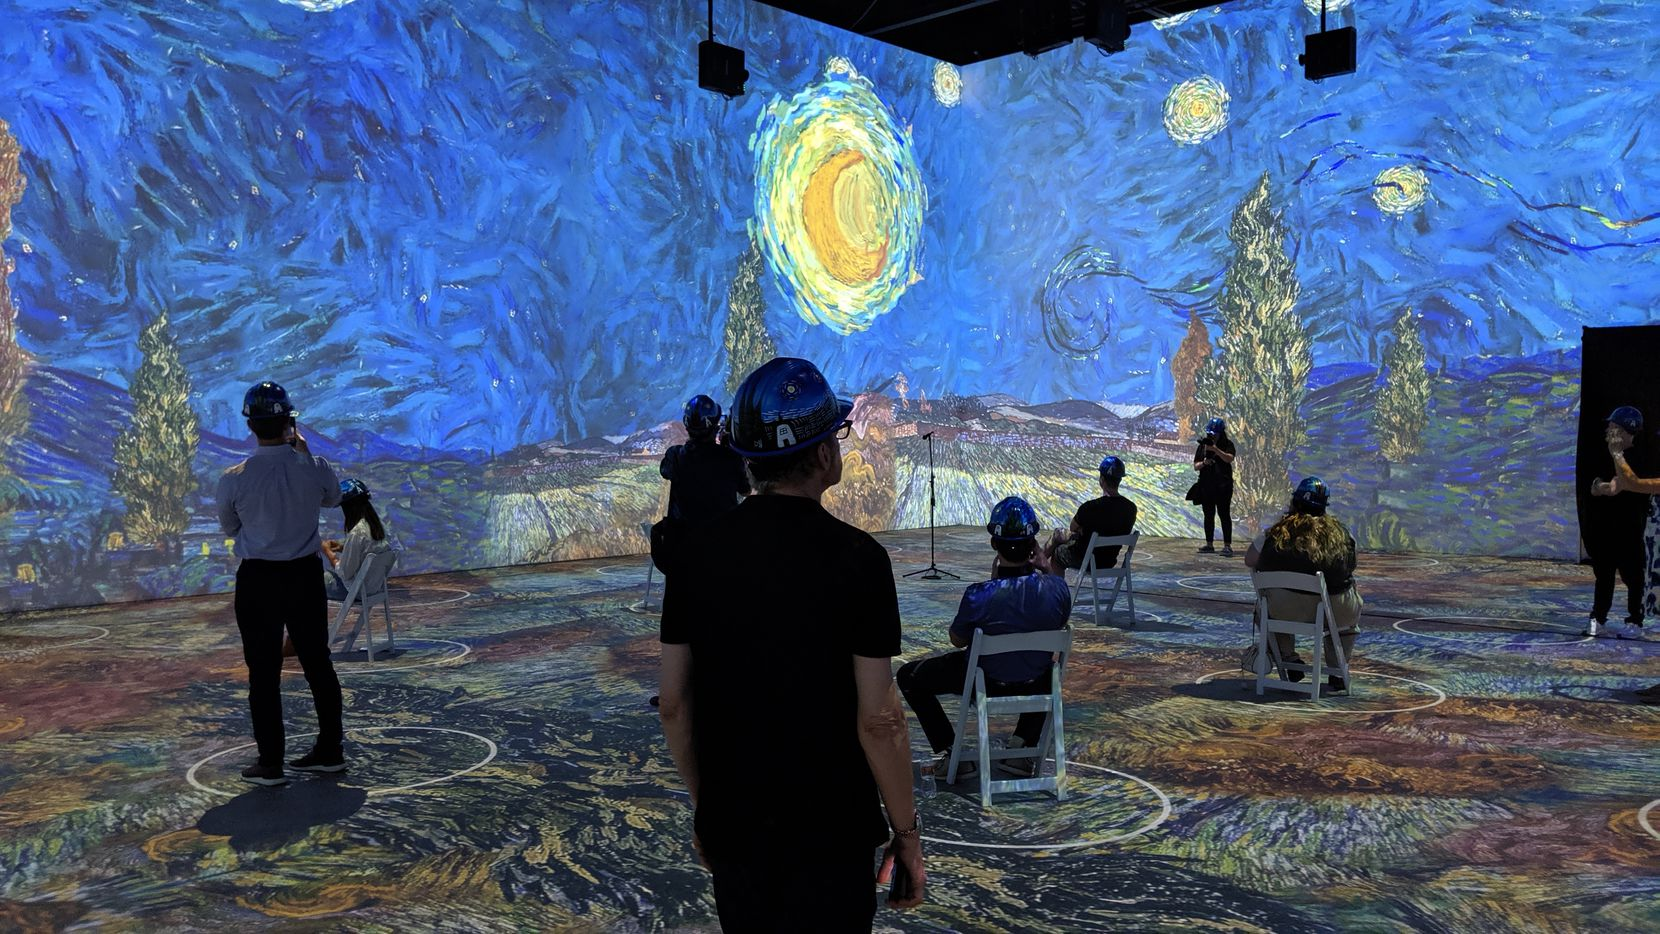 """""""Starry Night"""" is one of the Dutch artist's paintings that has been deconstructed and rebuilt as video projections for """"Immersive Van Gogh Exhibit,"""" a commercial enterprise taking its cues from the immersive theater trend."""